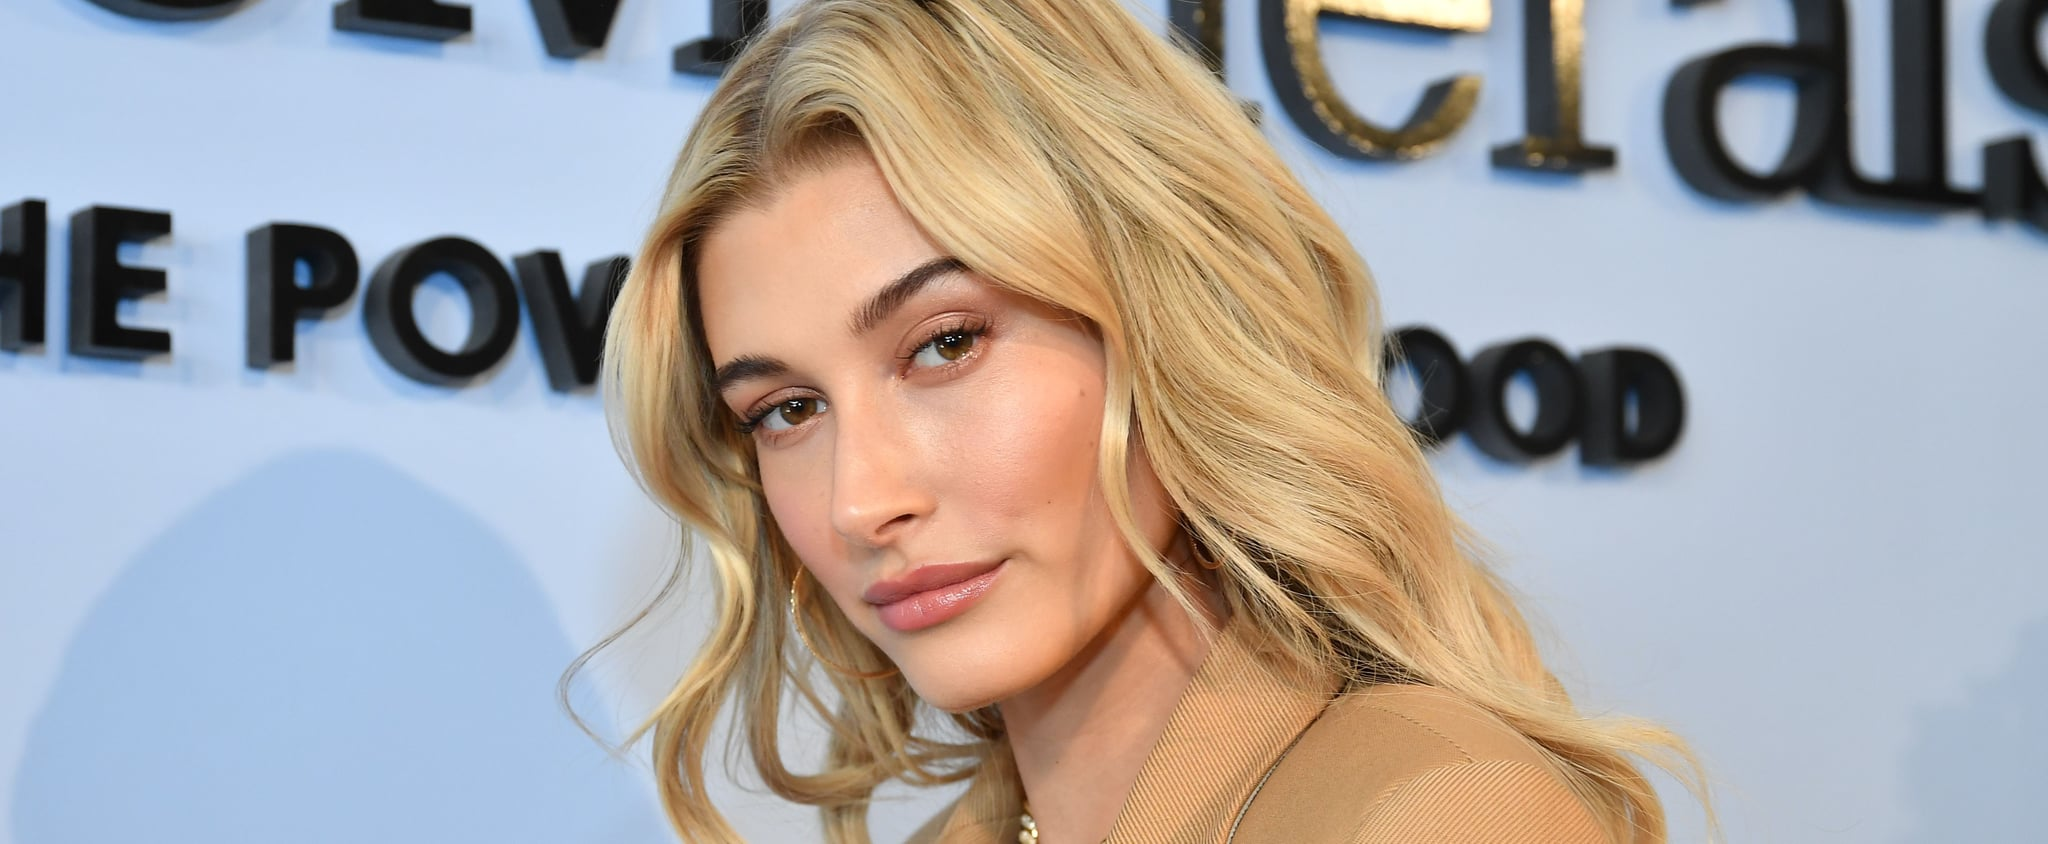 Hailey Bieber Birth Control Interview 2019